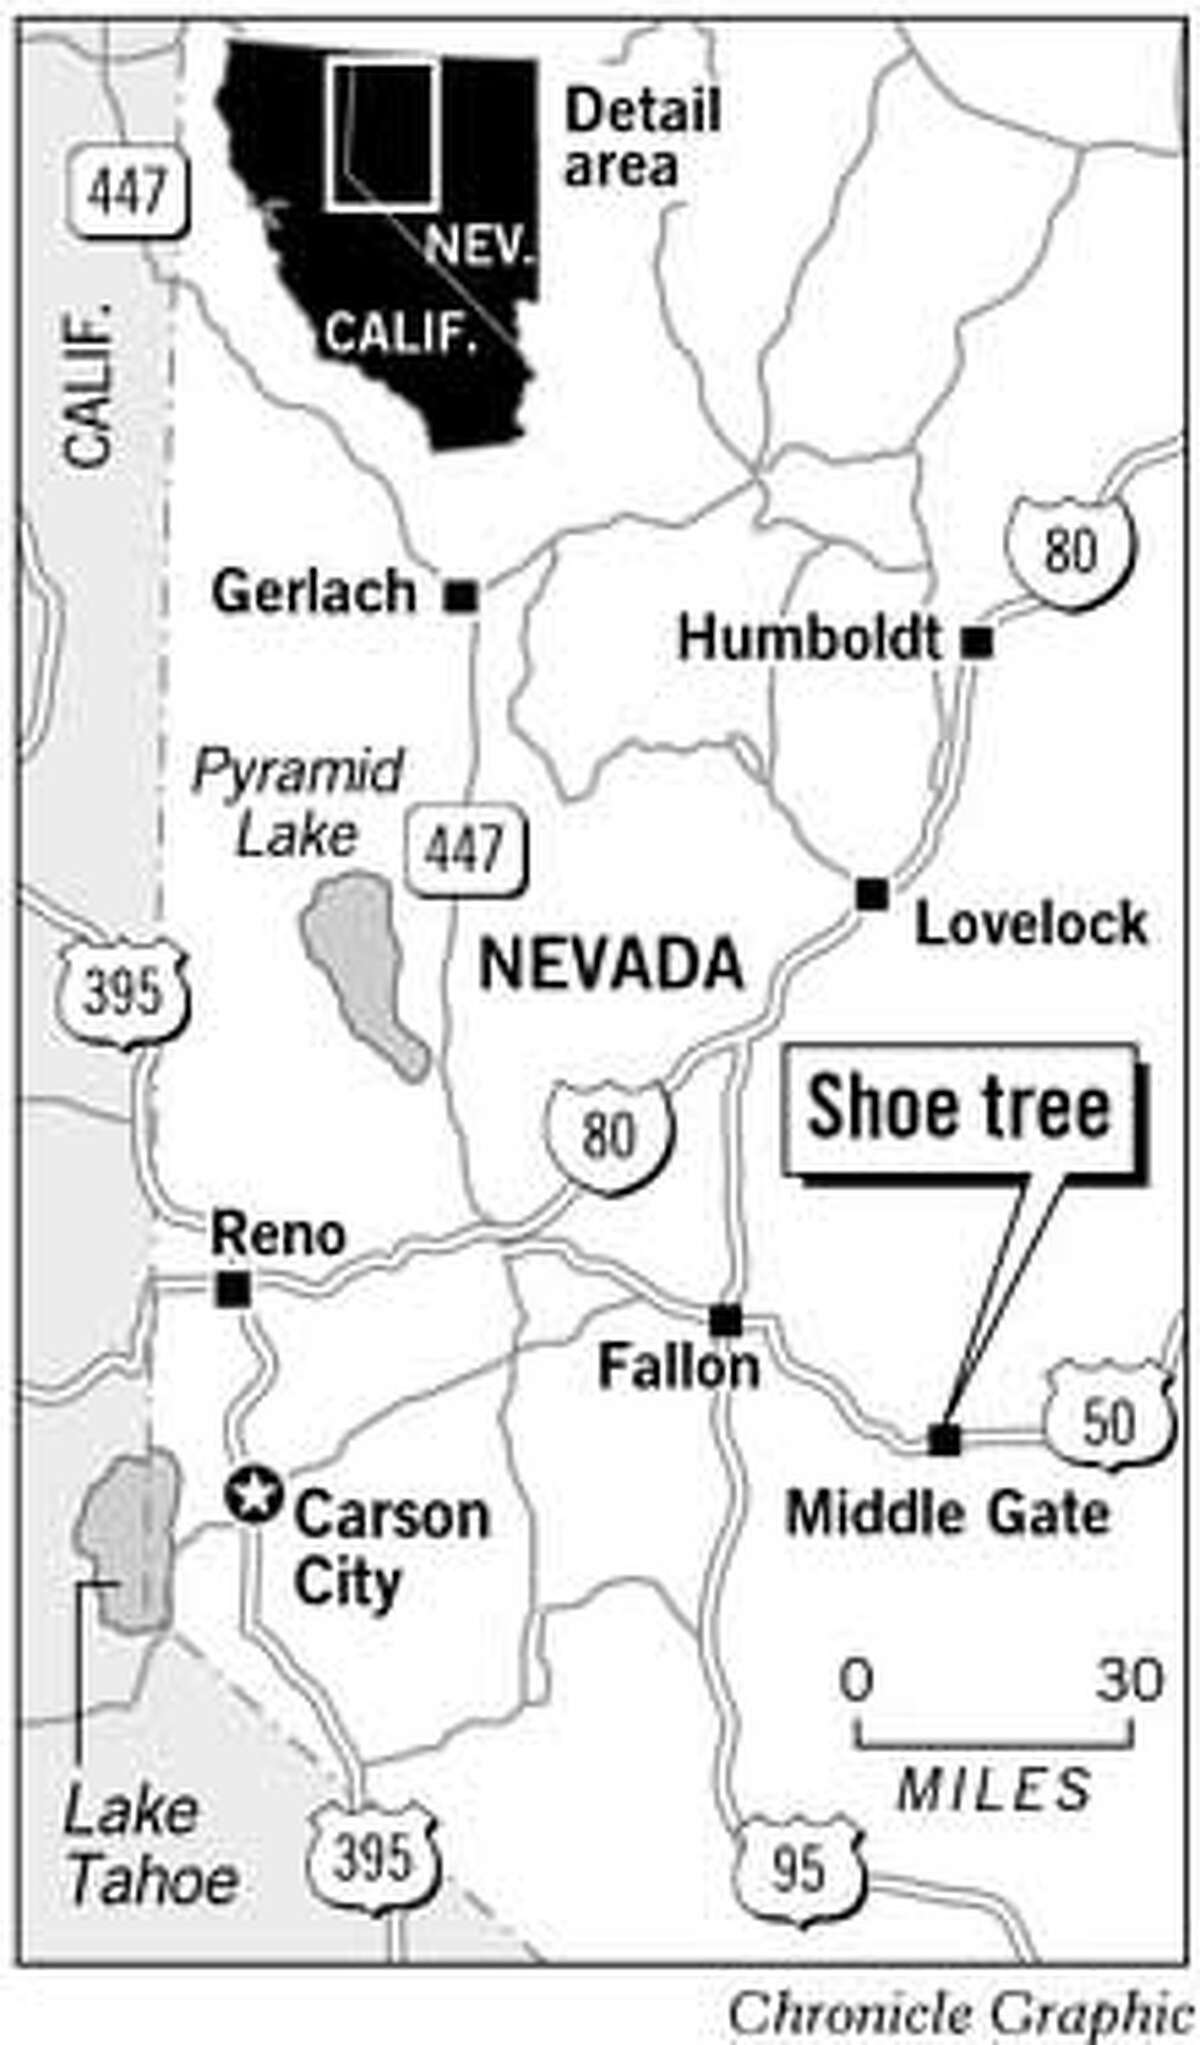 Central Nevada's Shoe Tree. Chronicle Graphic